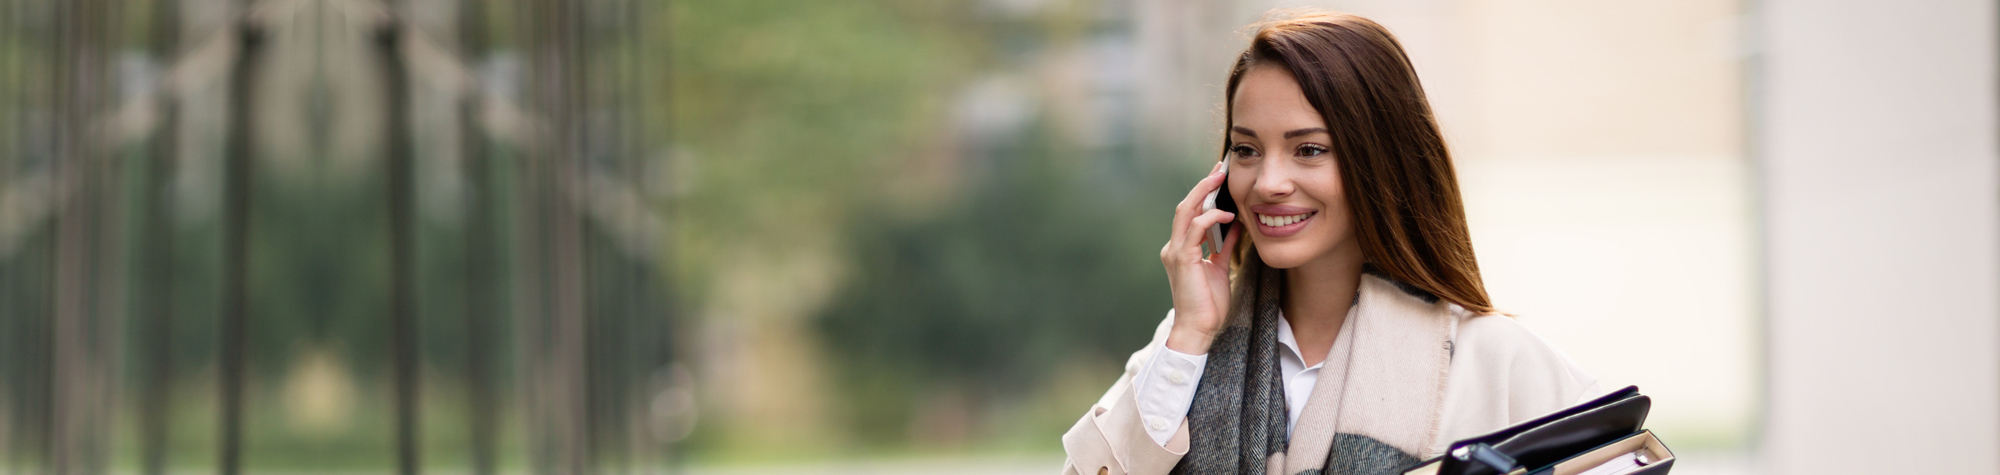 Search Consultancy's Sales Jobs Header Image, featuring smiling sales executive on the phone to a client.